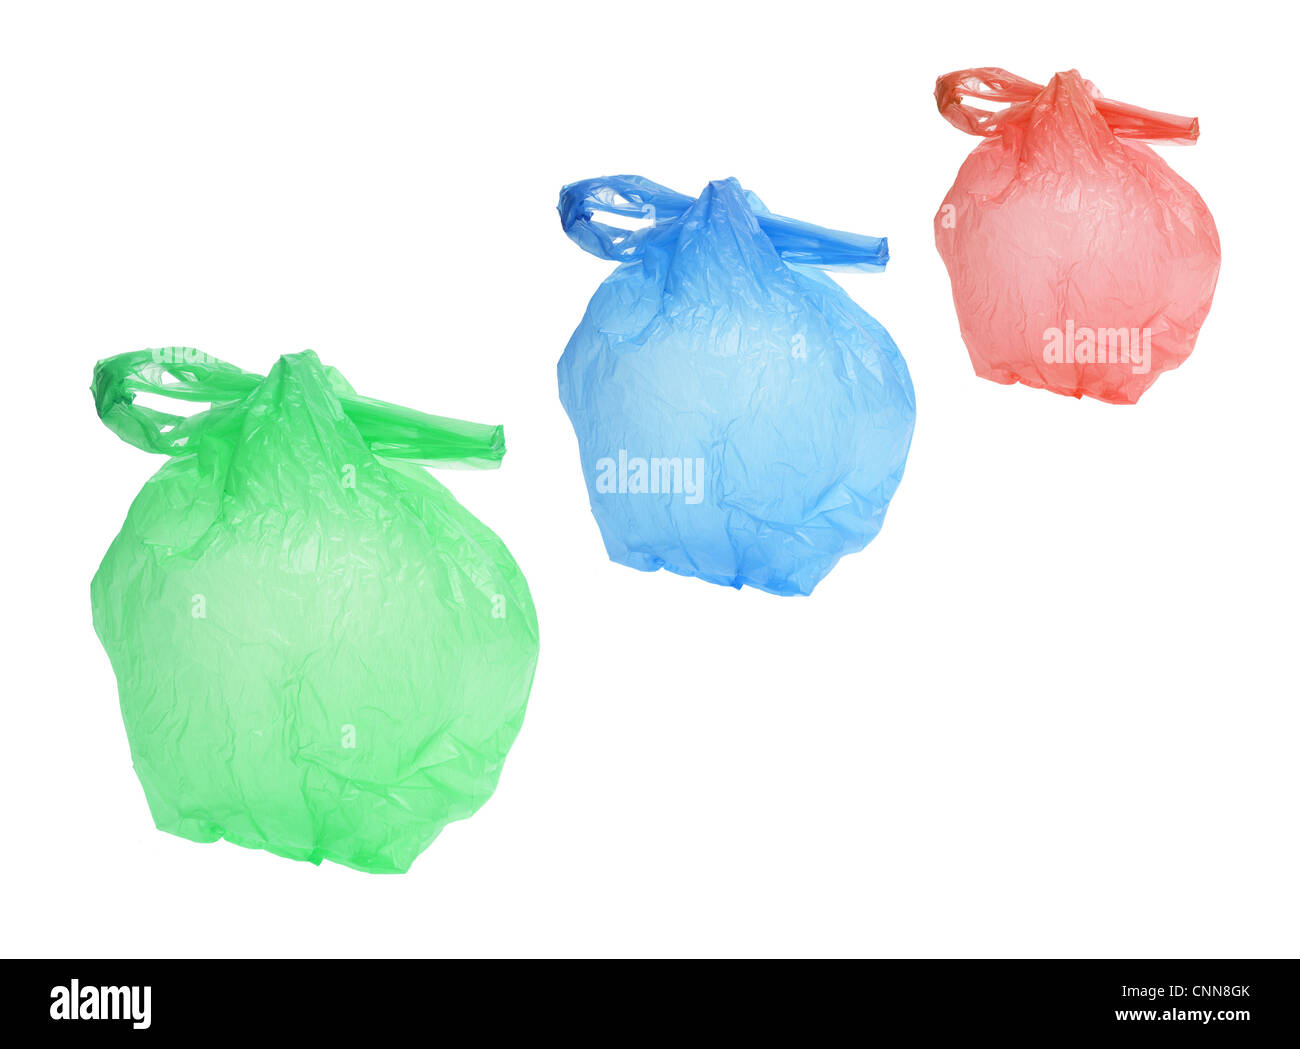 Row of Plastic Bags - Stock Image